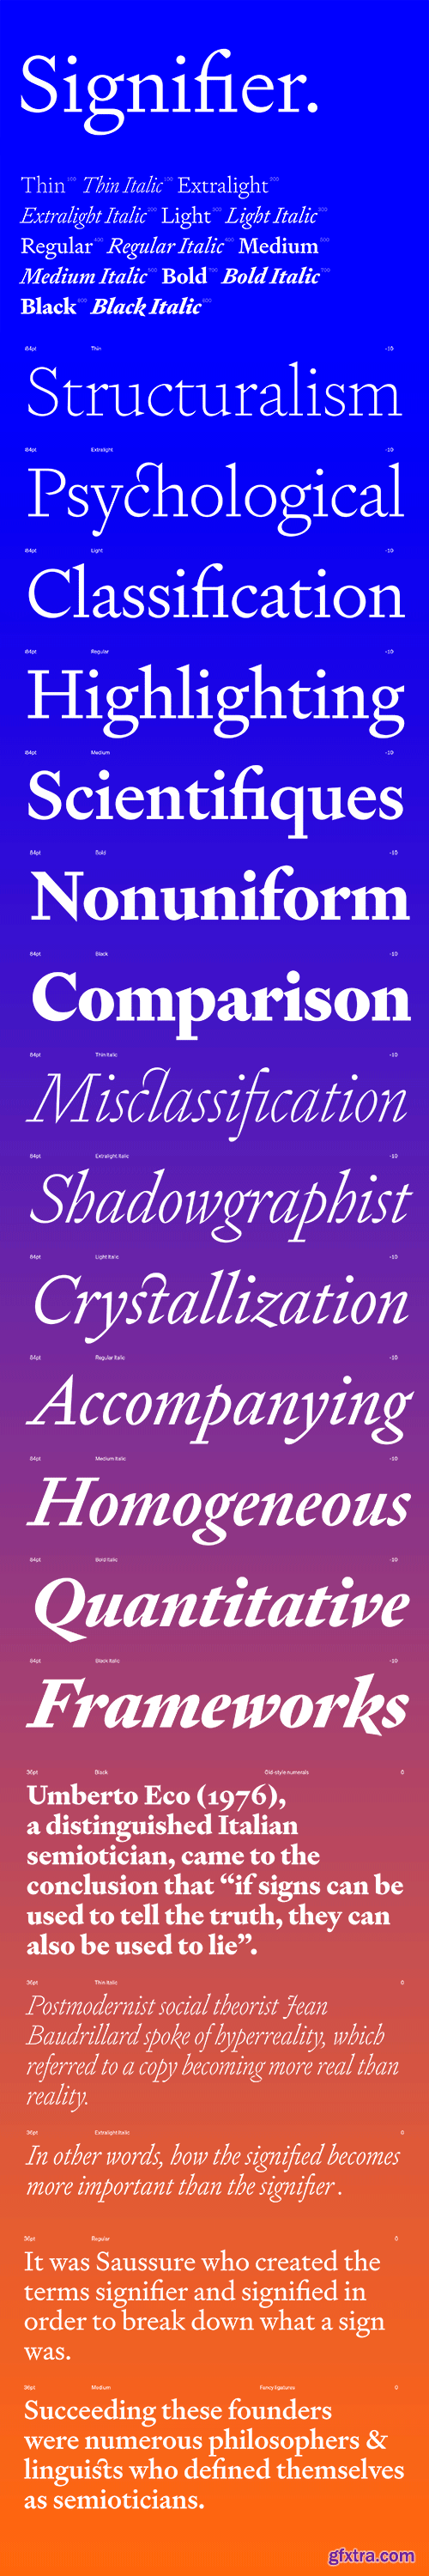 Signifier Font Family